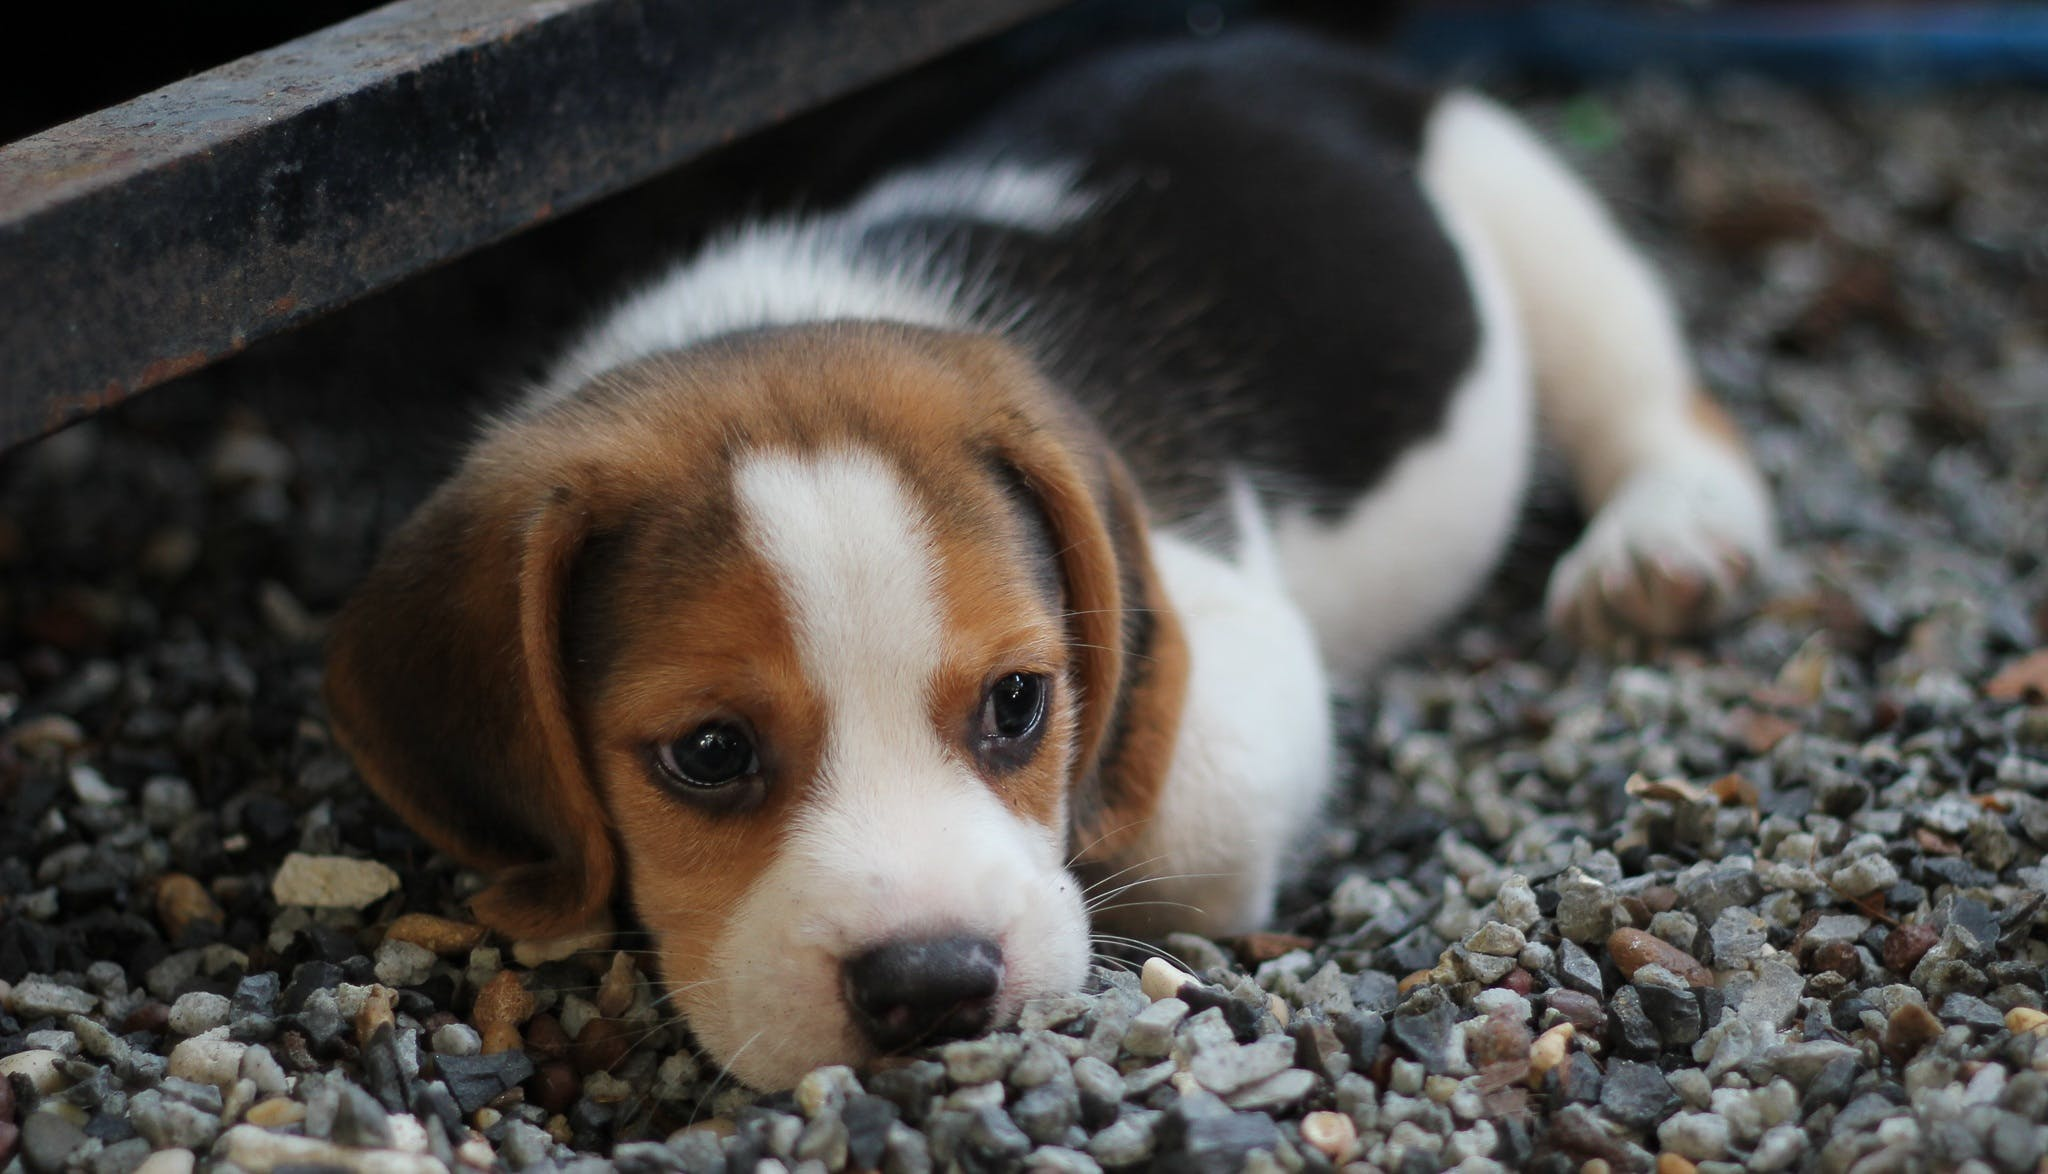 Picture: https://www.pexels.com/photo/animal-beagle-canine-close-up-460823/